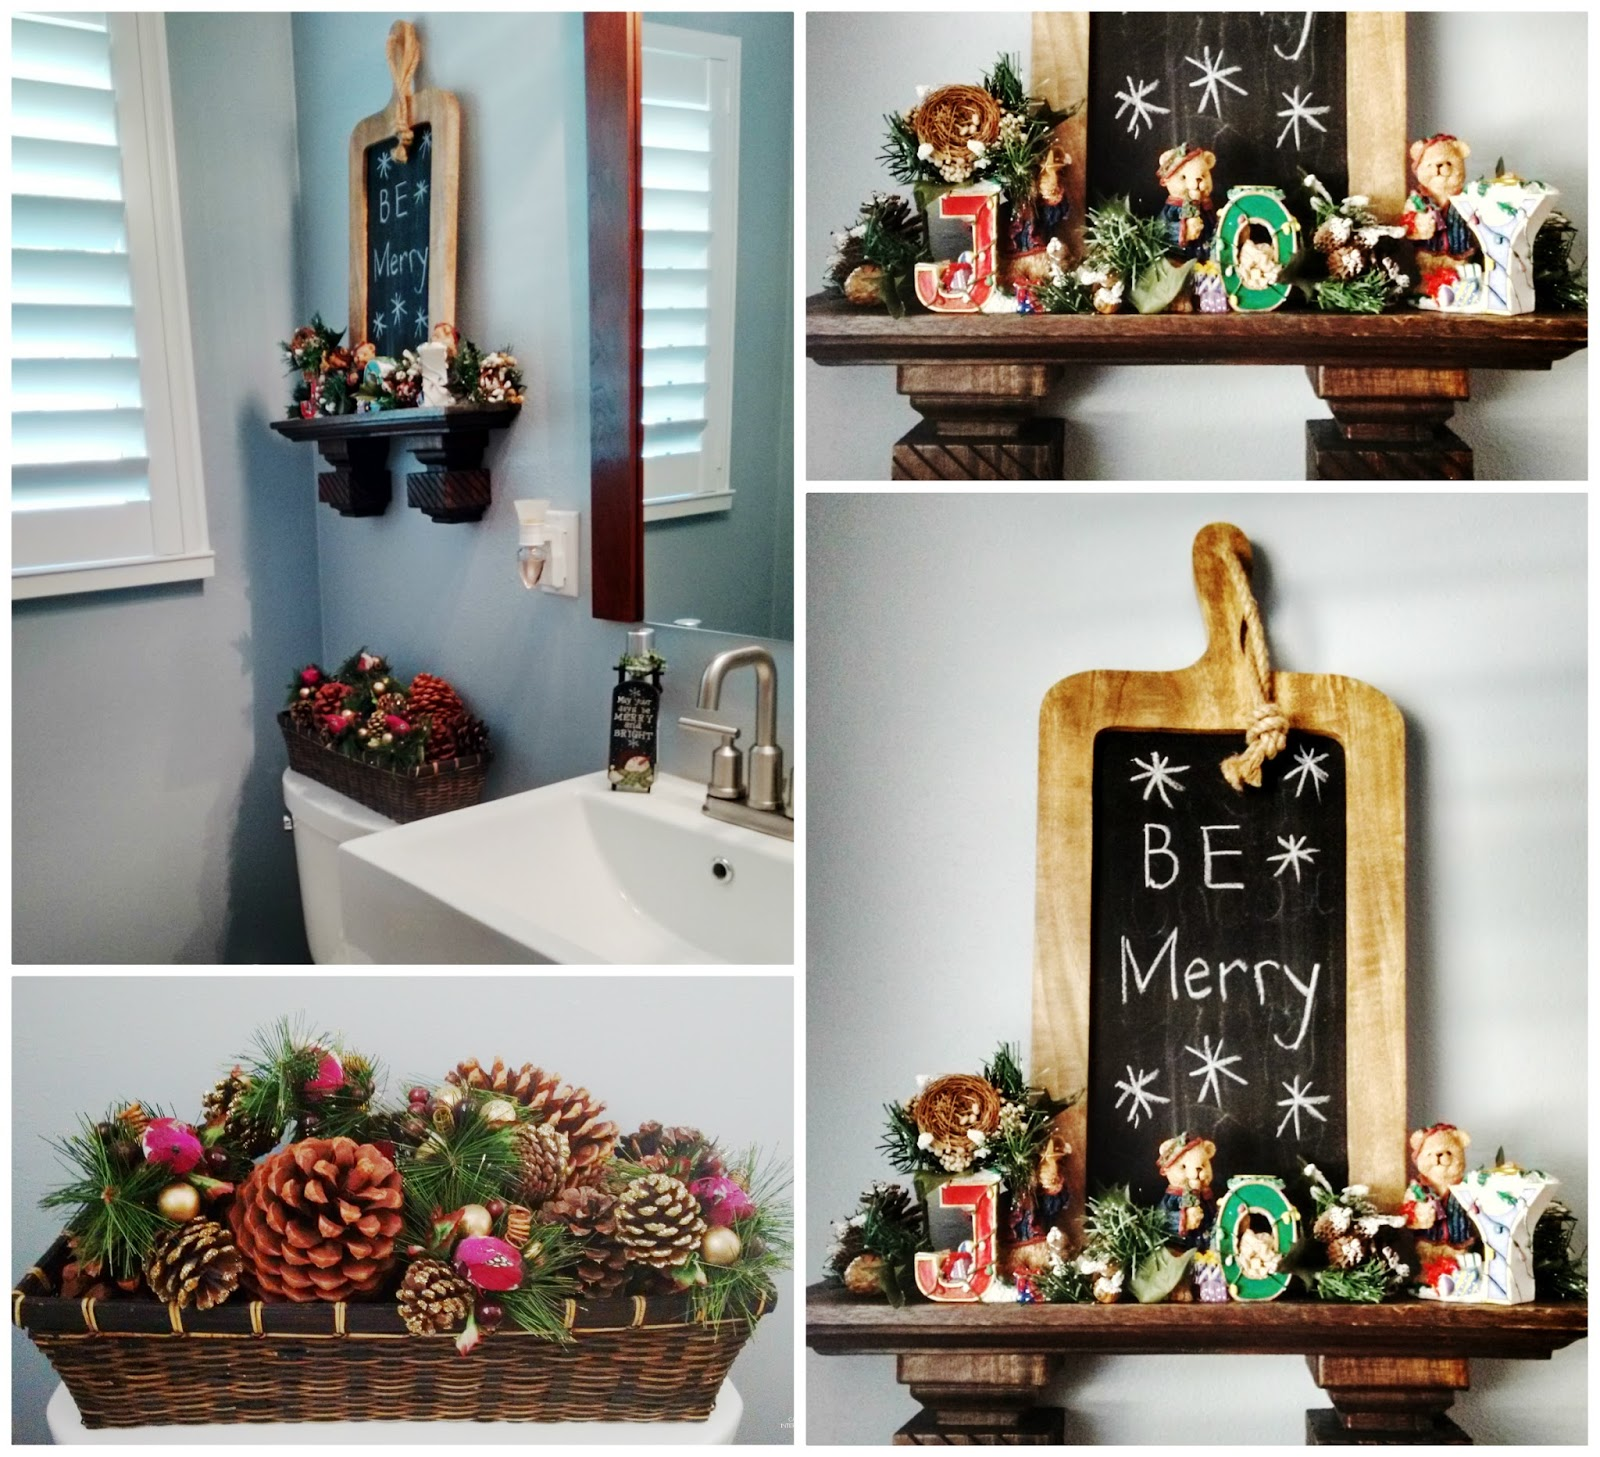 Christmas decorating rustic traditional classic holiday decor